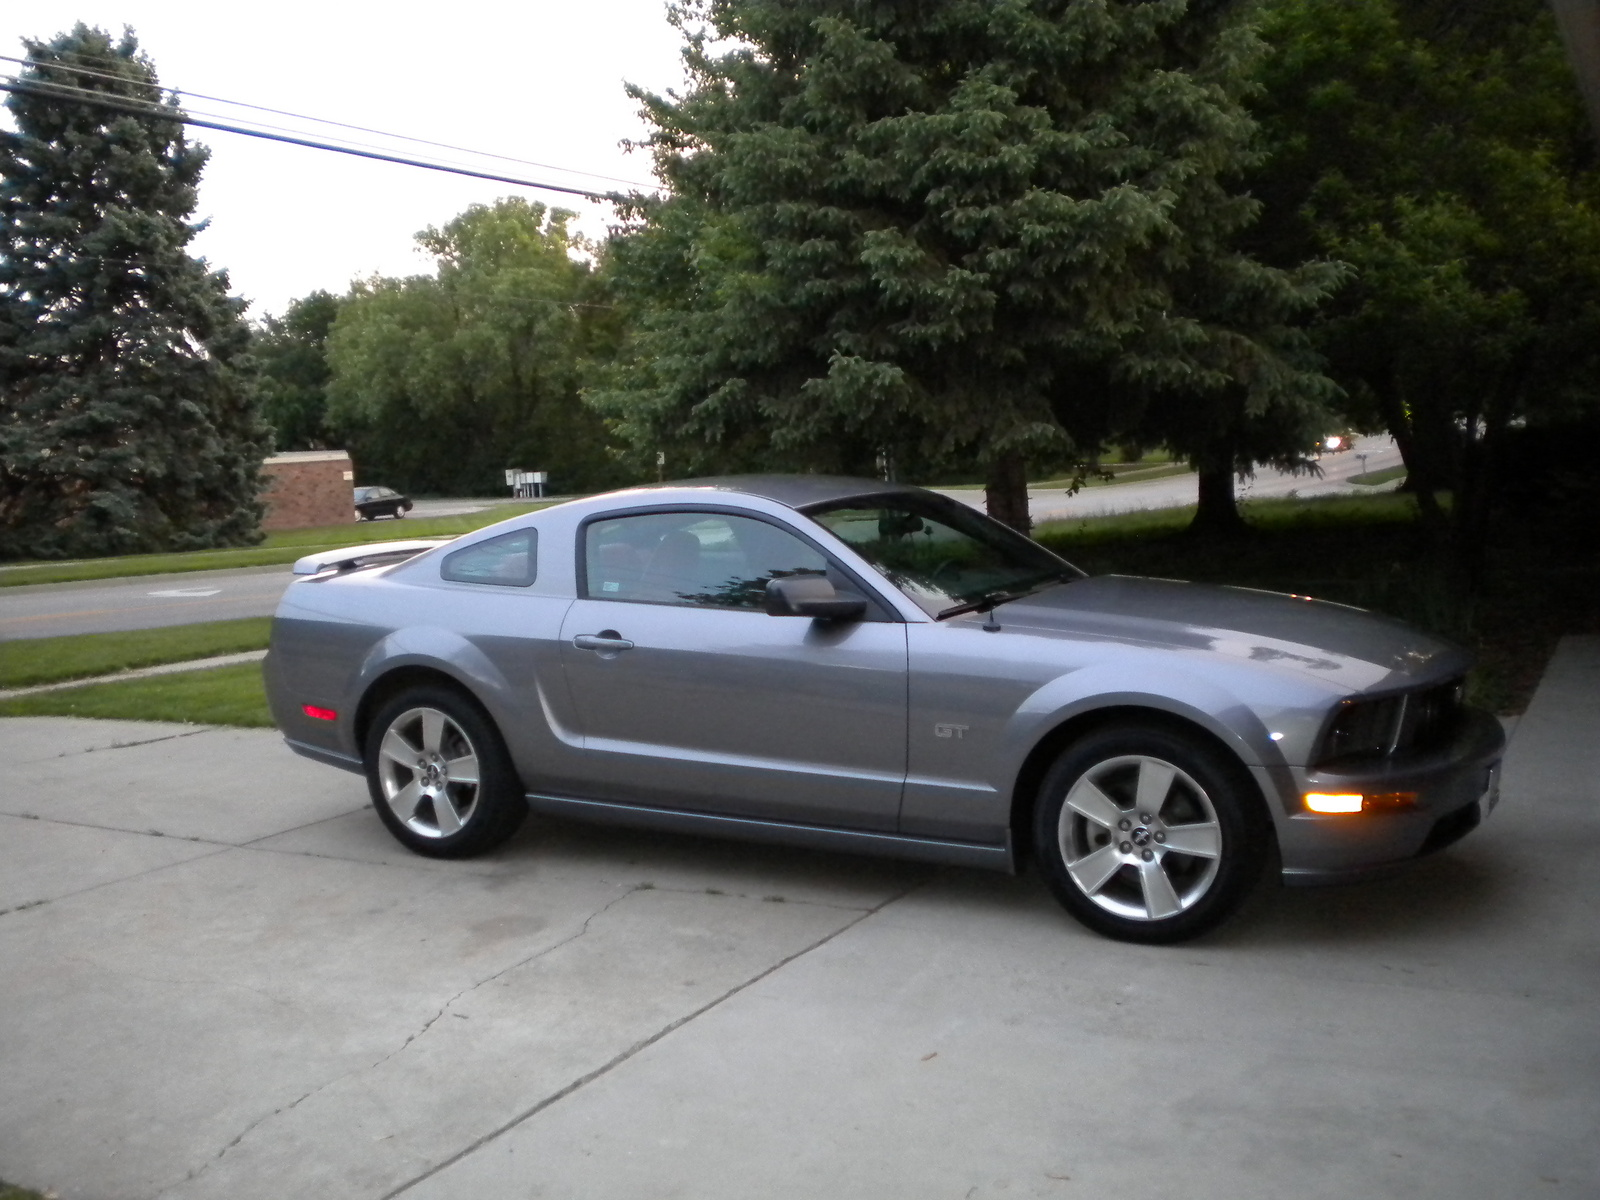 1996 Ford Mustang Parts Picture of 2006 Ford Mustang GT Premium, exterior